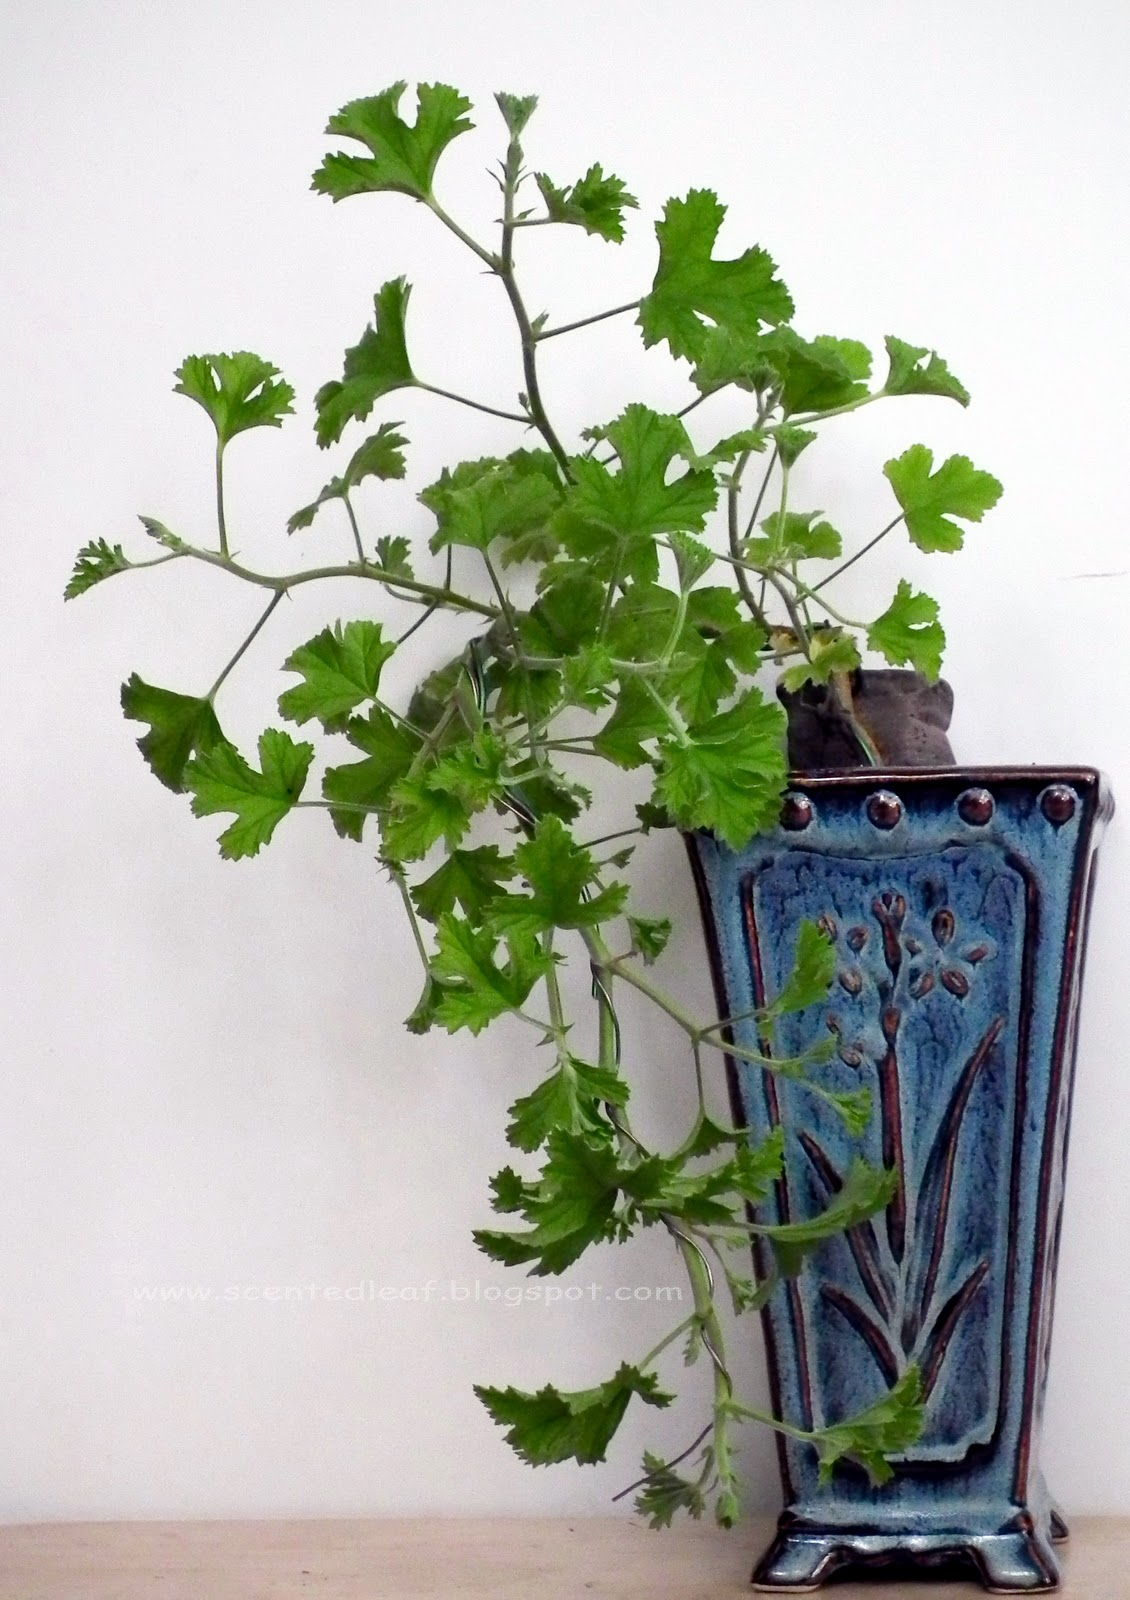 Scented Leaf Pelargoniums Trained As Cascade Bonsai